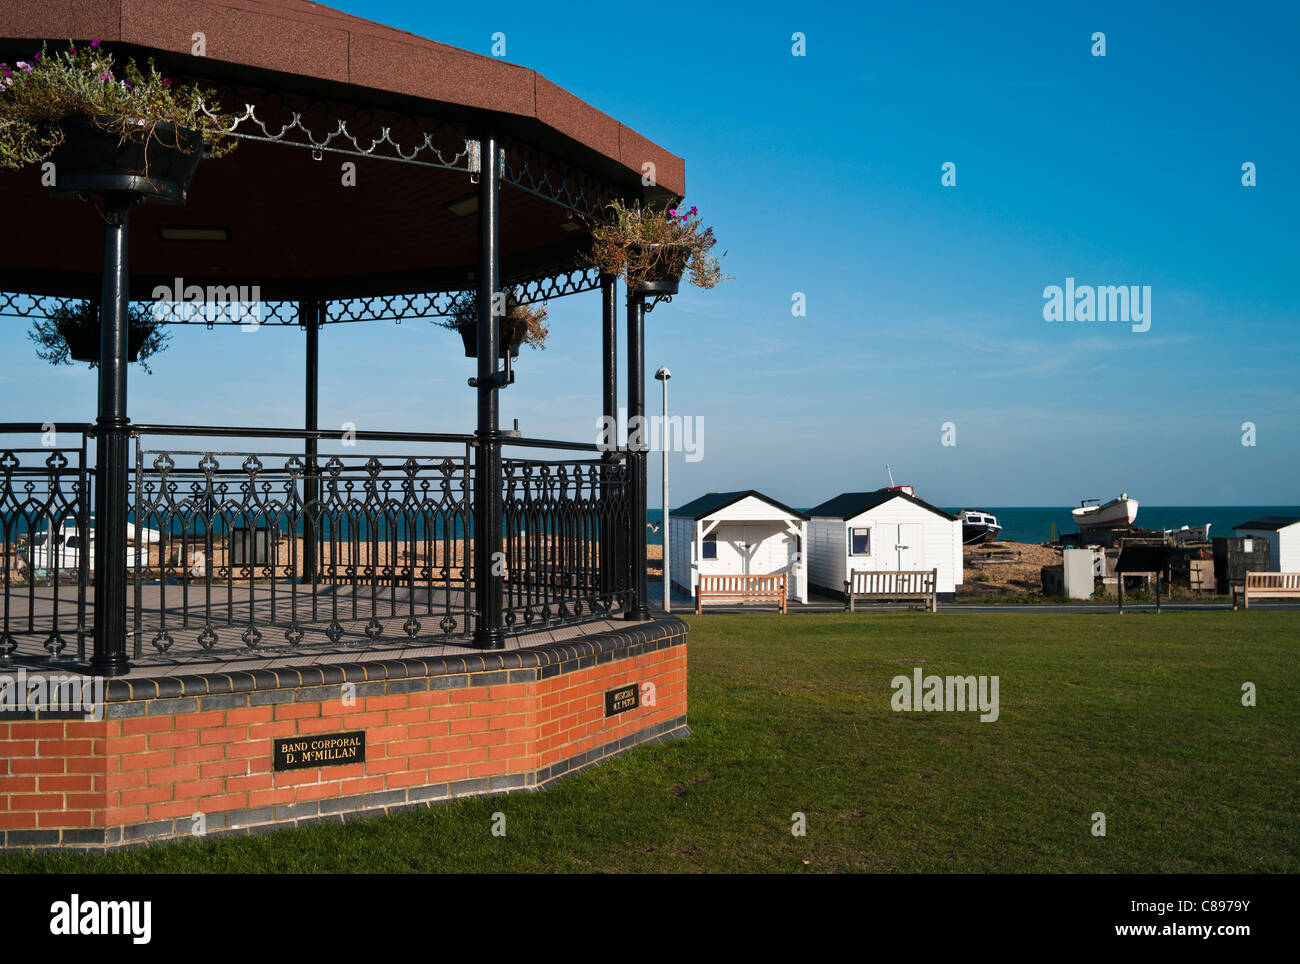 The Military Bandstand on the Seafront, Walmer, Deal, in Memory of Military Bandsmen Killed In IRA Bombing of 1989 - Stock Image